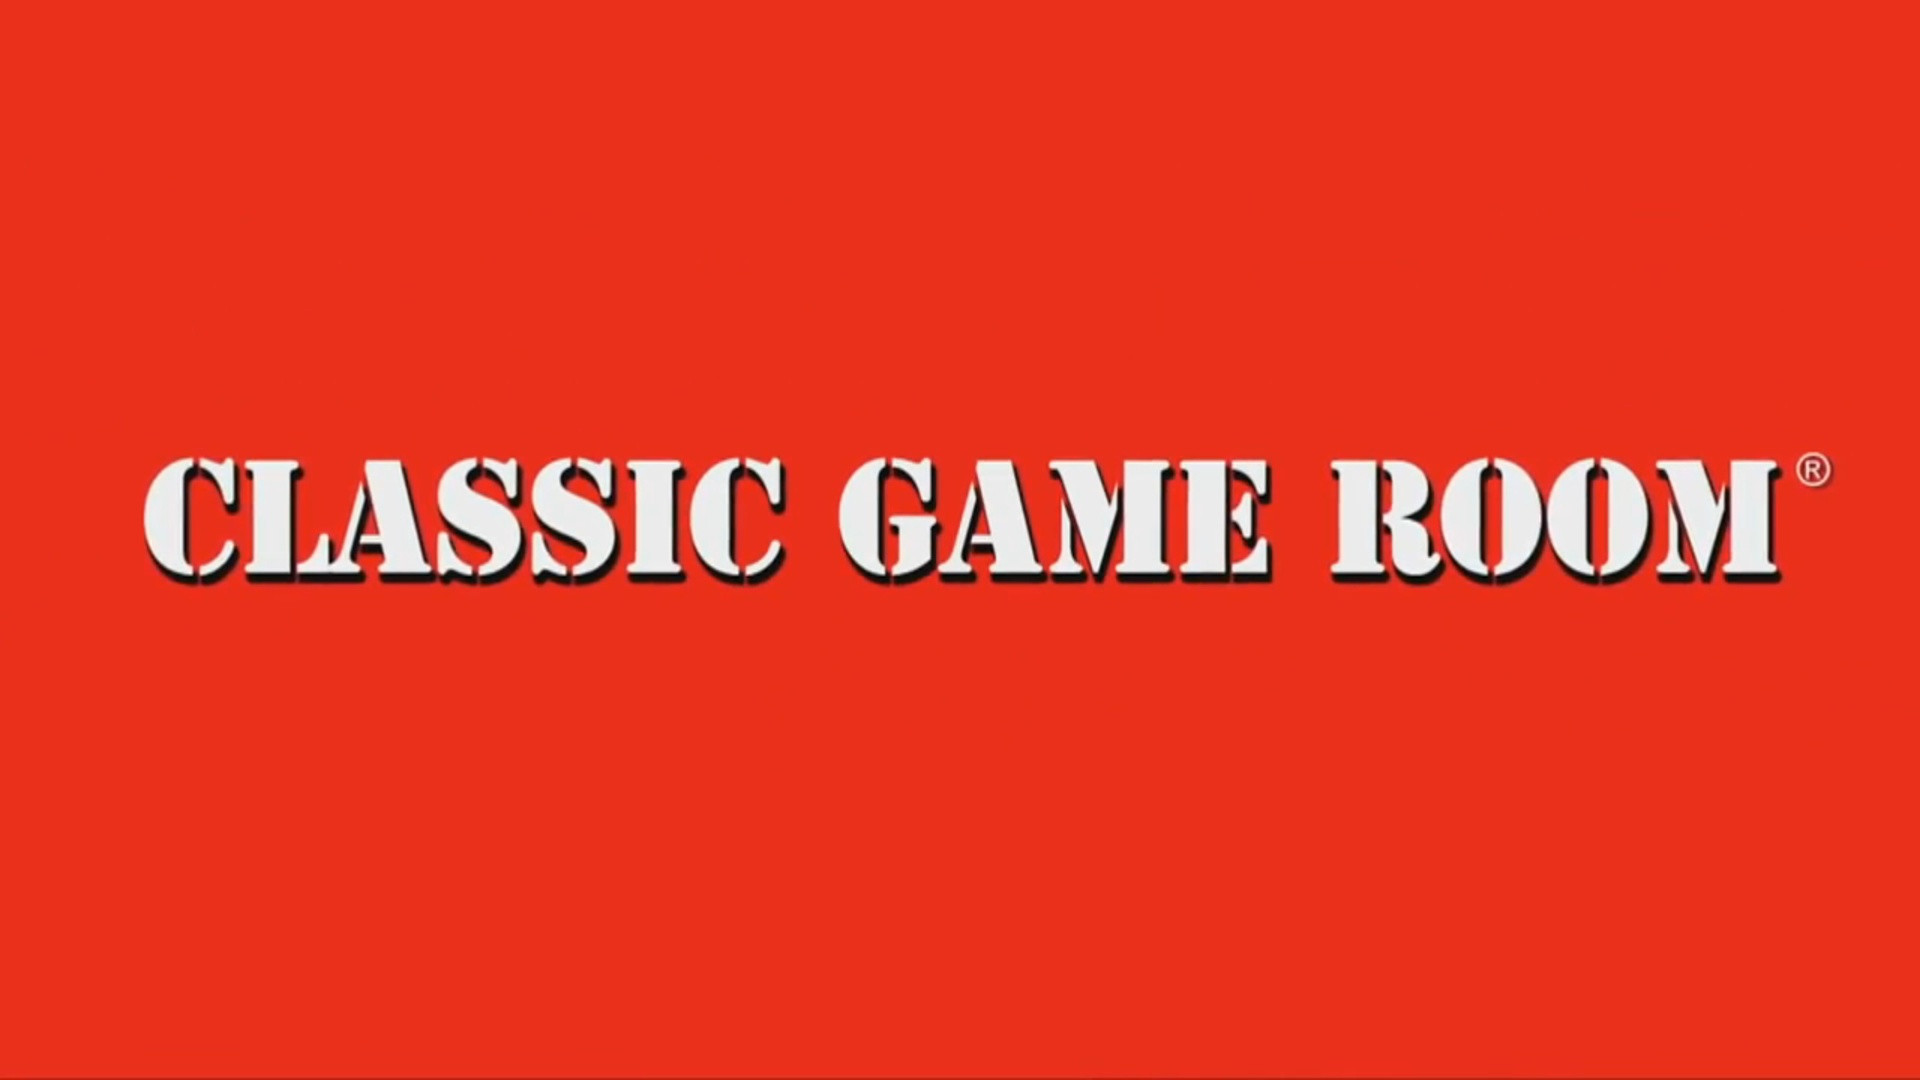 Best ideas about Classic Game Room . Save or Pin Classic Game Room Classic Game Room Wiki Now.